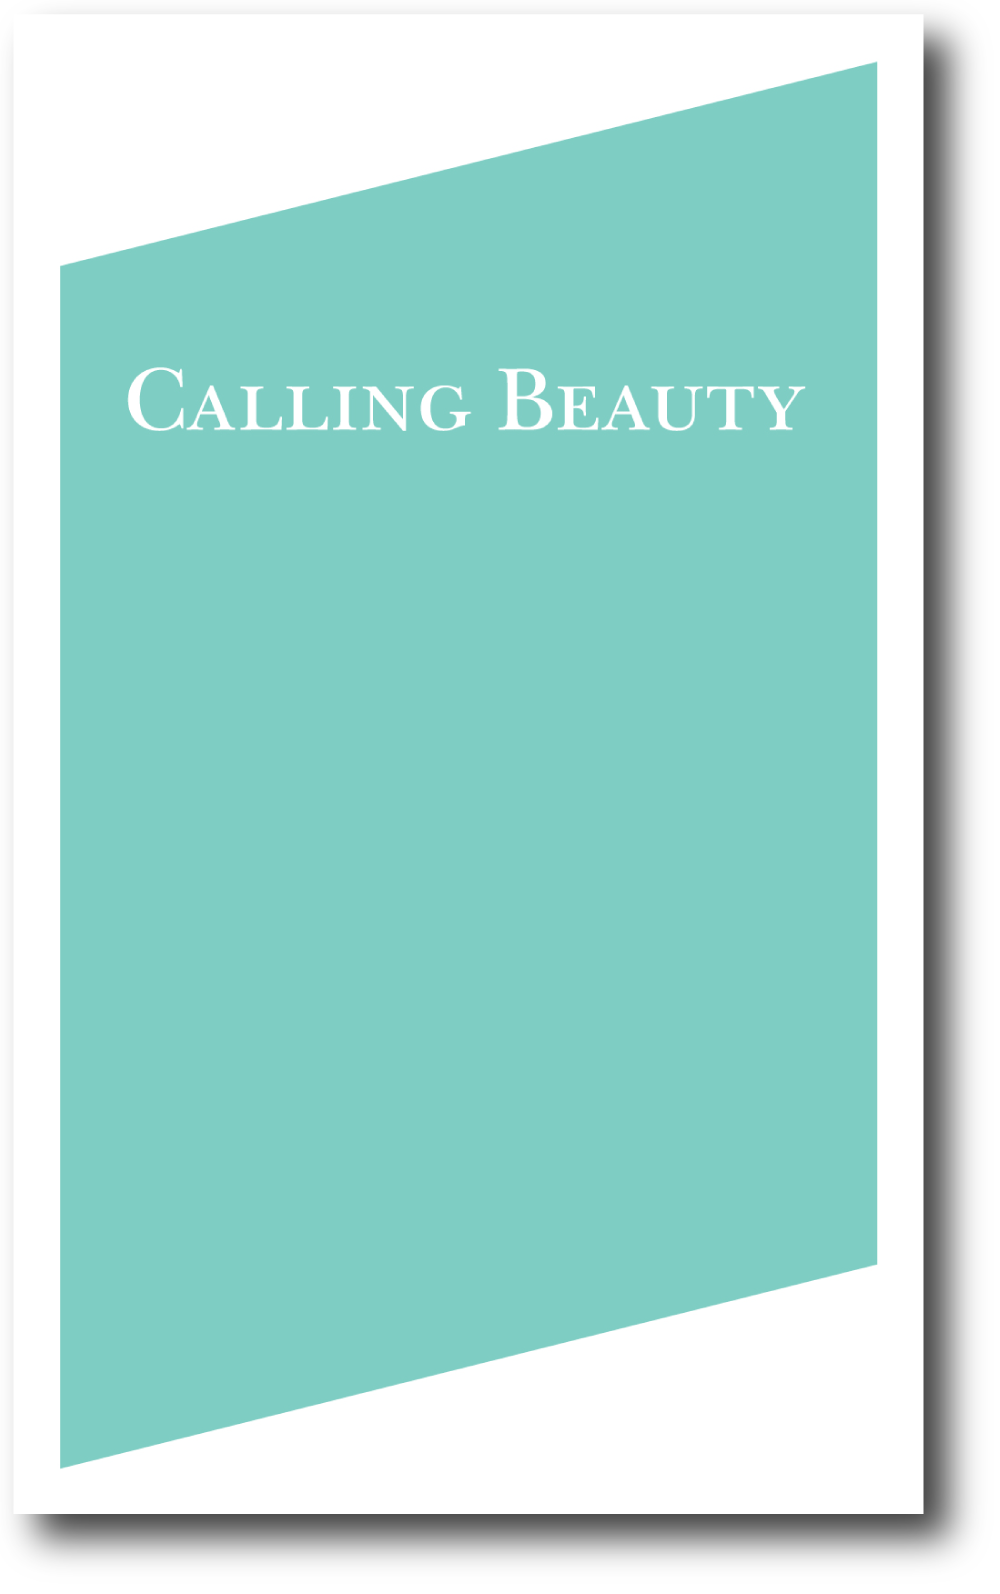 BOC-Publication-Calling-Beauty-cover.png